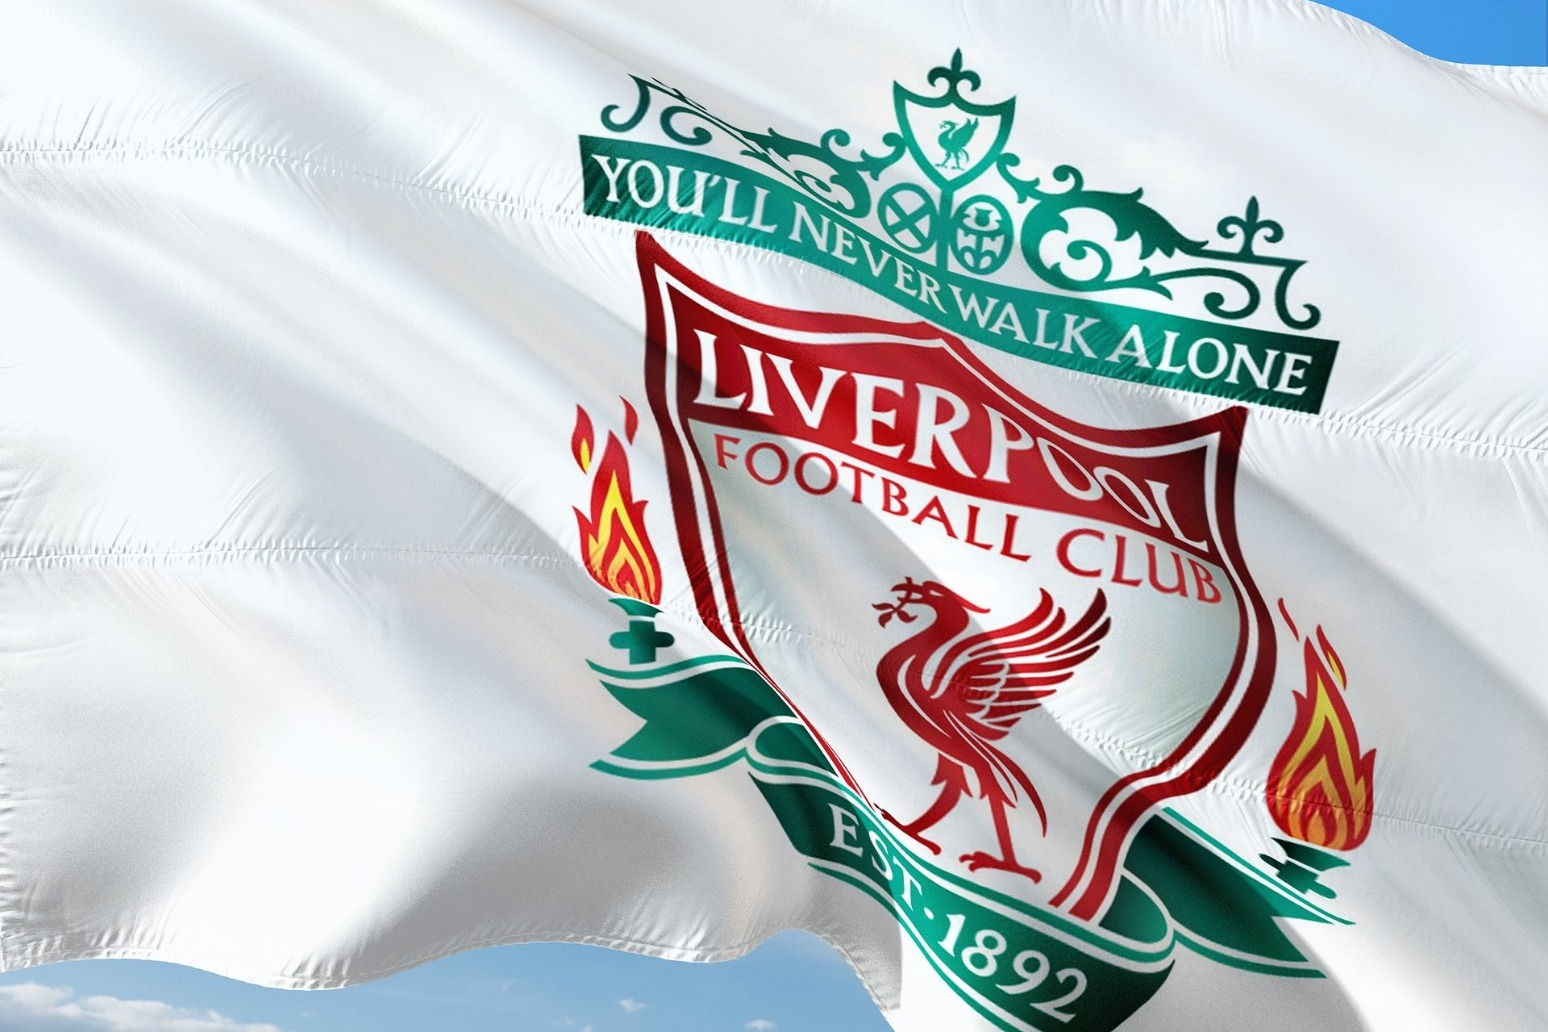 Carlsberg extends sponsorship deal with Liverpool FC